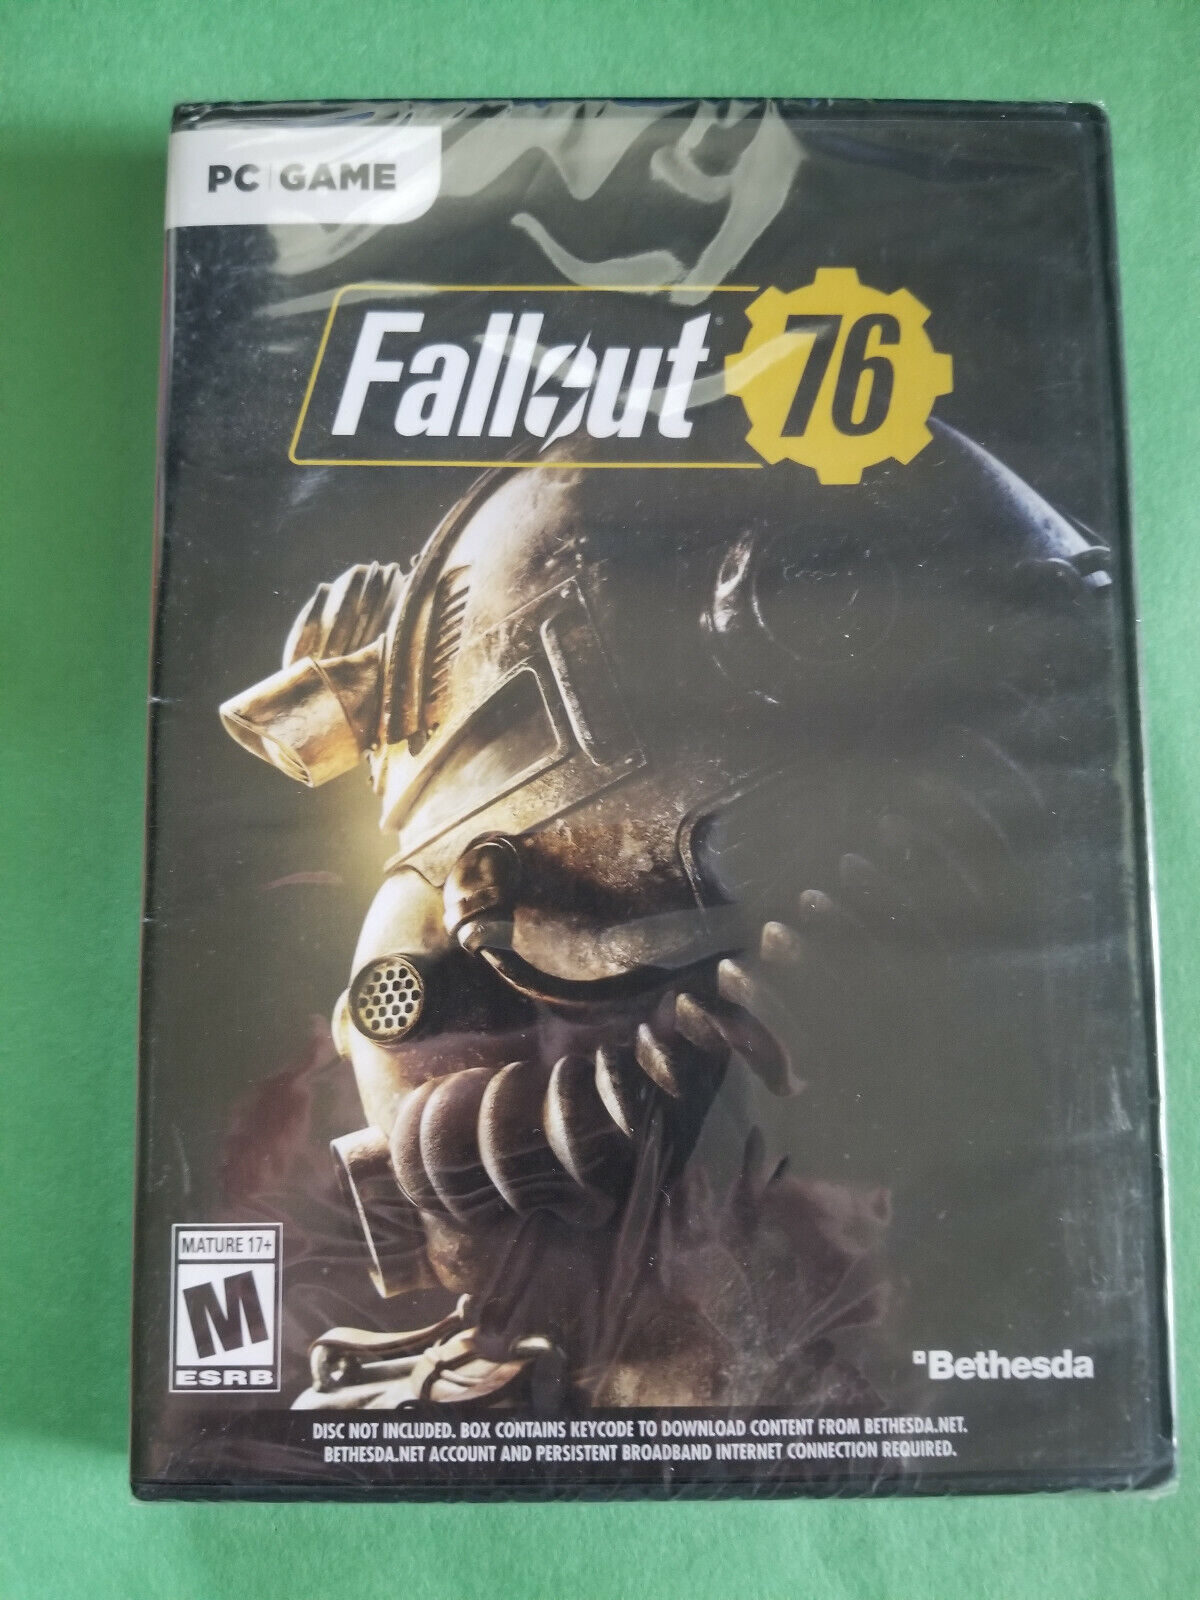 Computer Games - NEW - Fallout 76 - PC Computer Game - Free Shipping!!